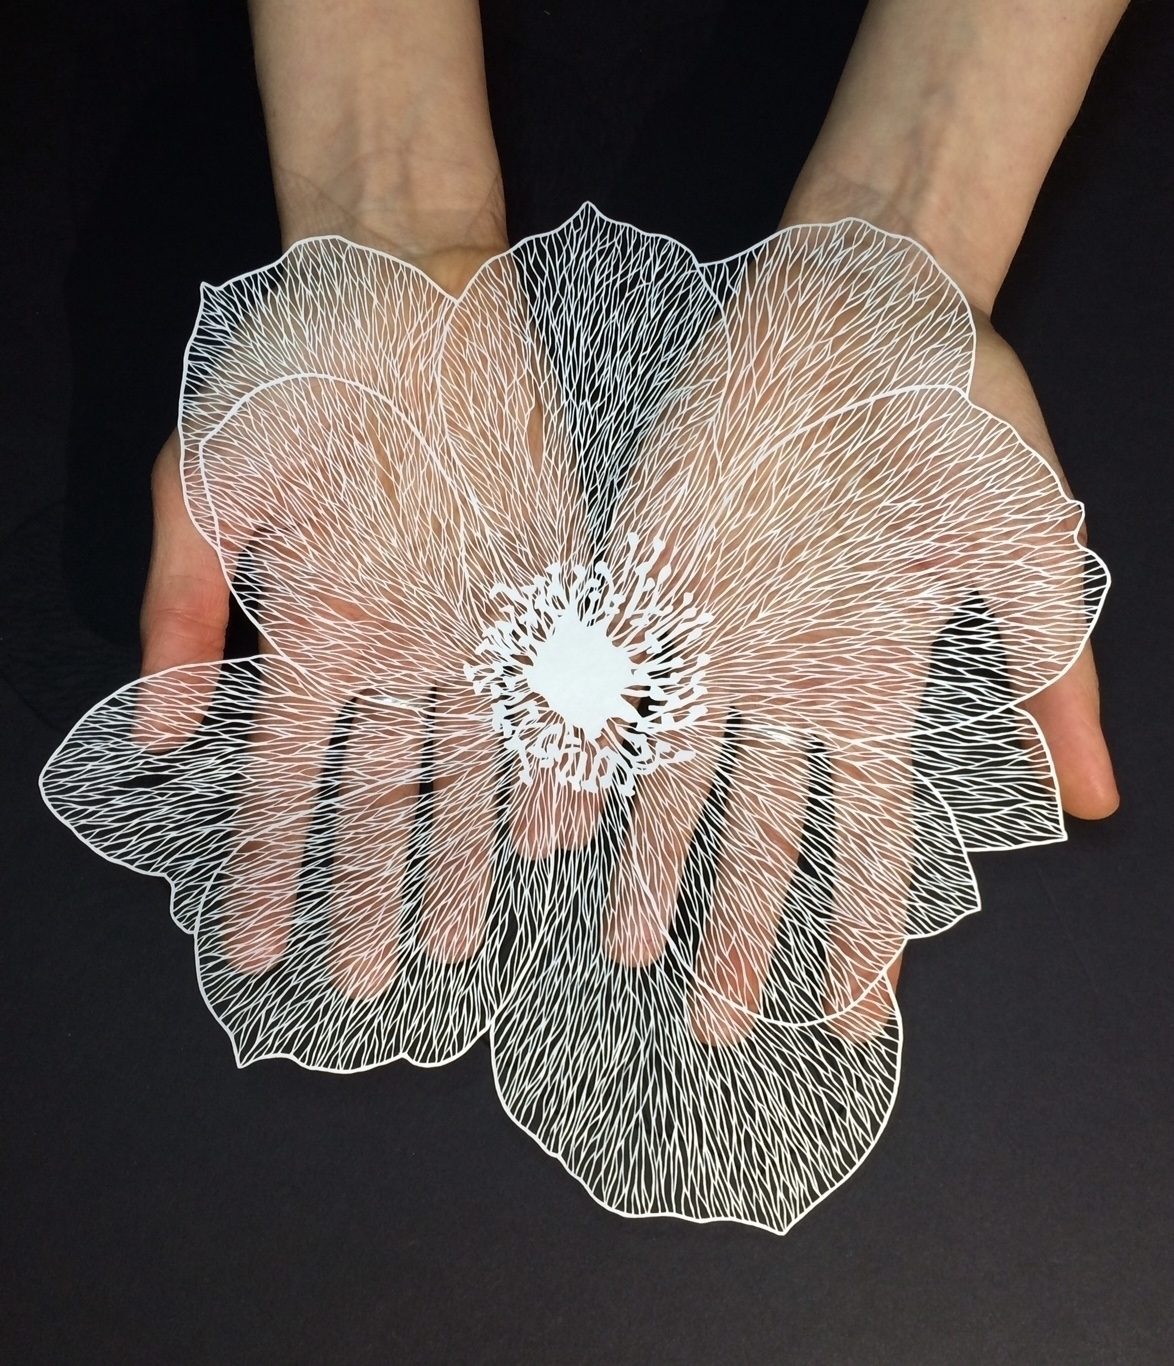 Paper carving artist – Maud White flower